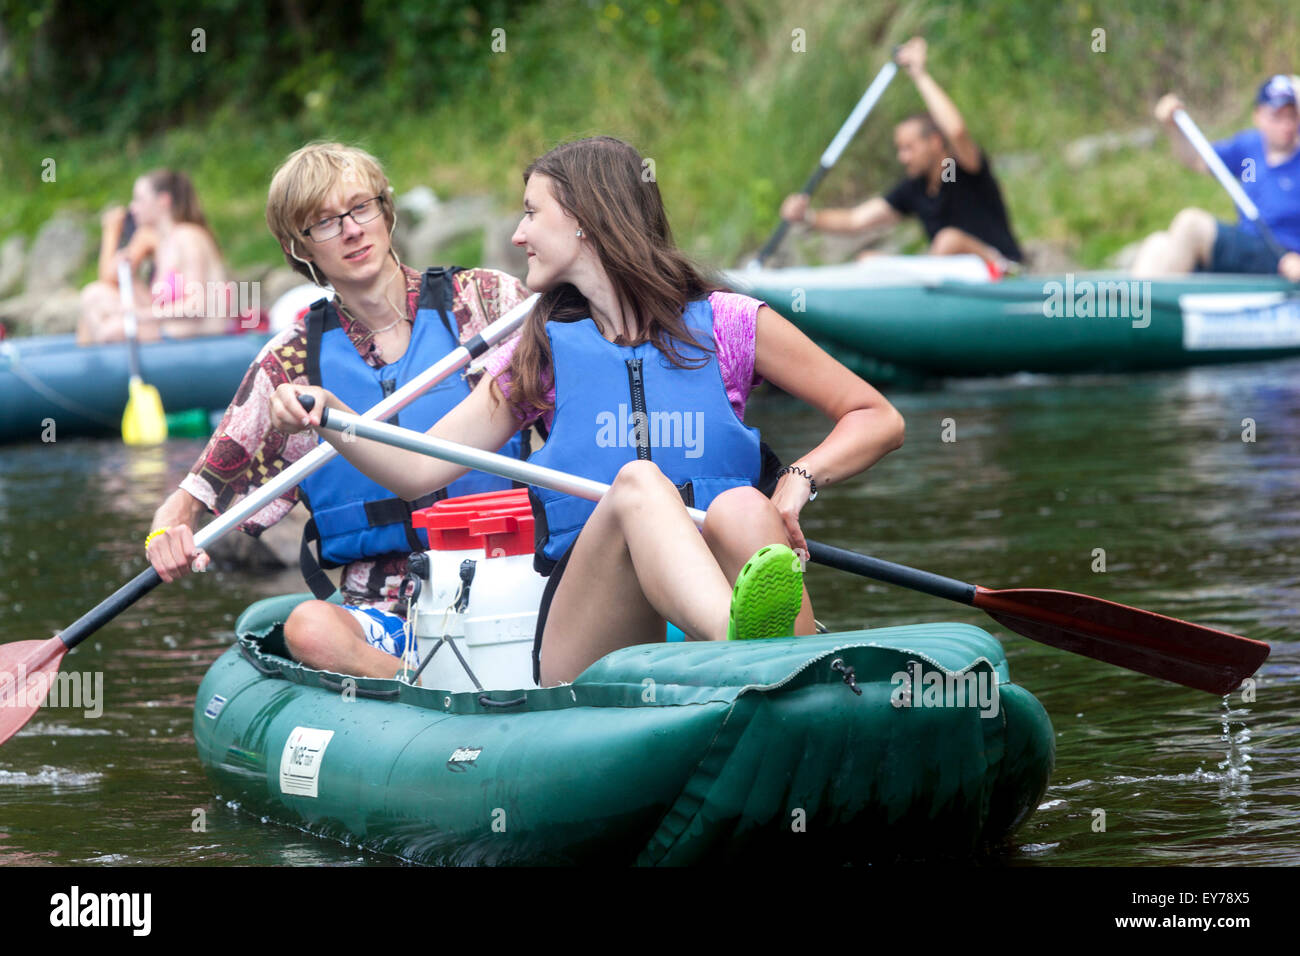 People going down by the river Vltava, rafting, South Bohemia, Czech Republic - Stock Image